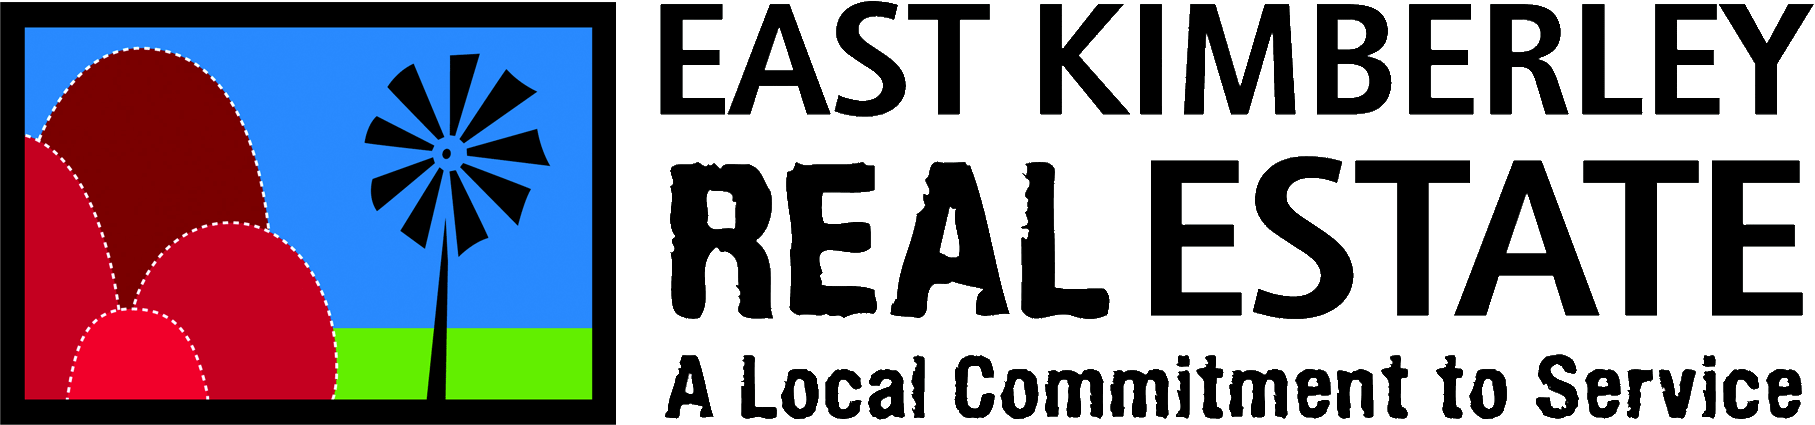 East Kimberley Real Estate - logo